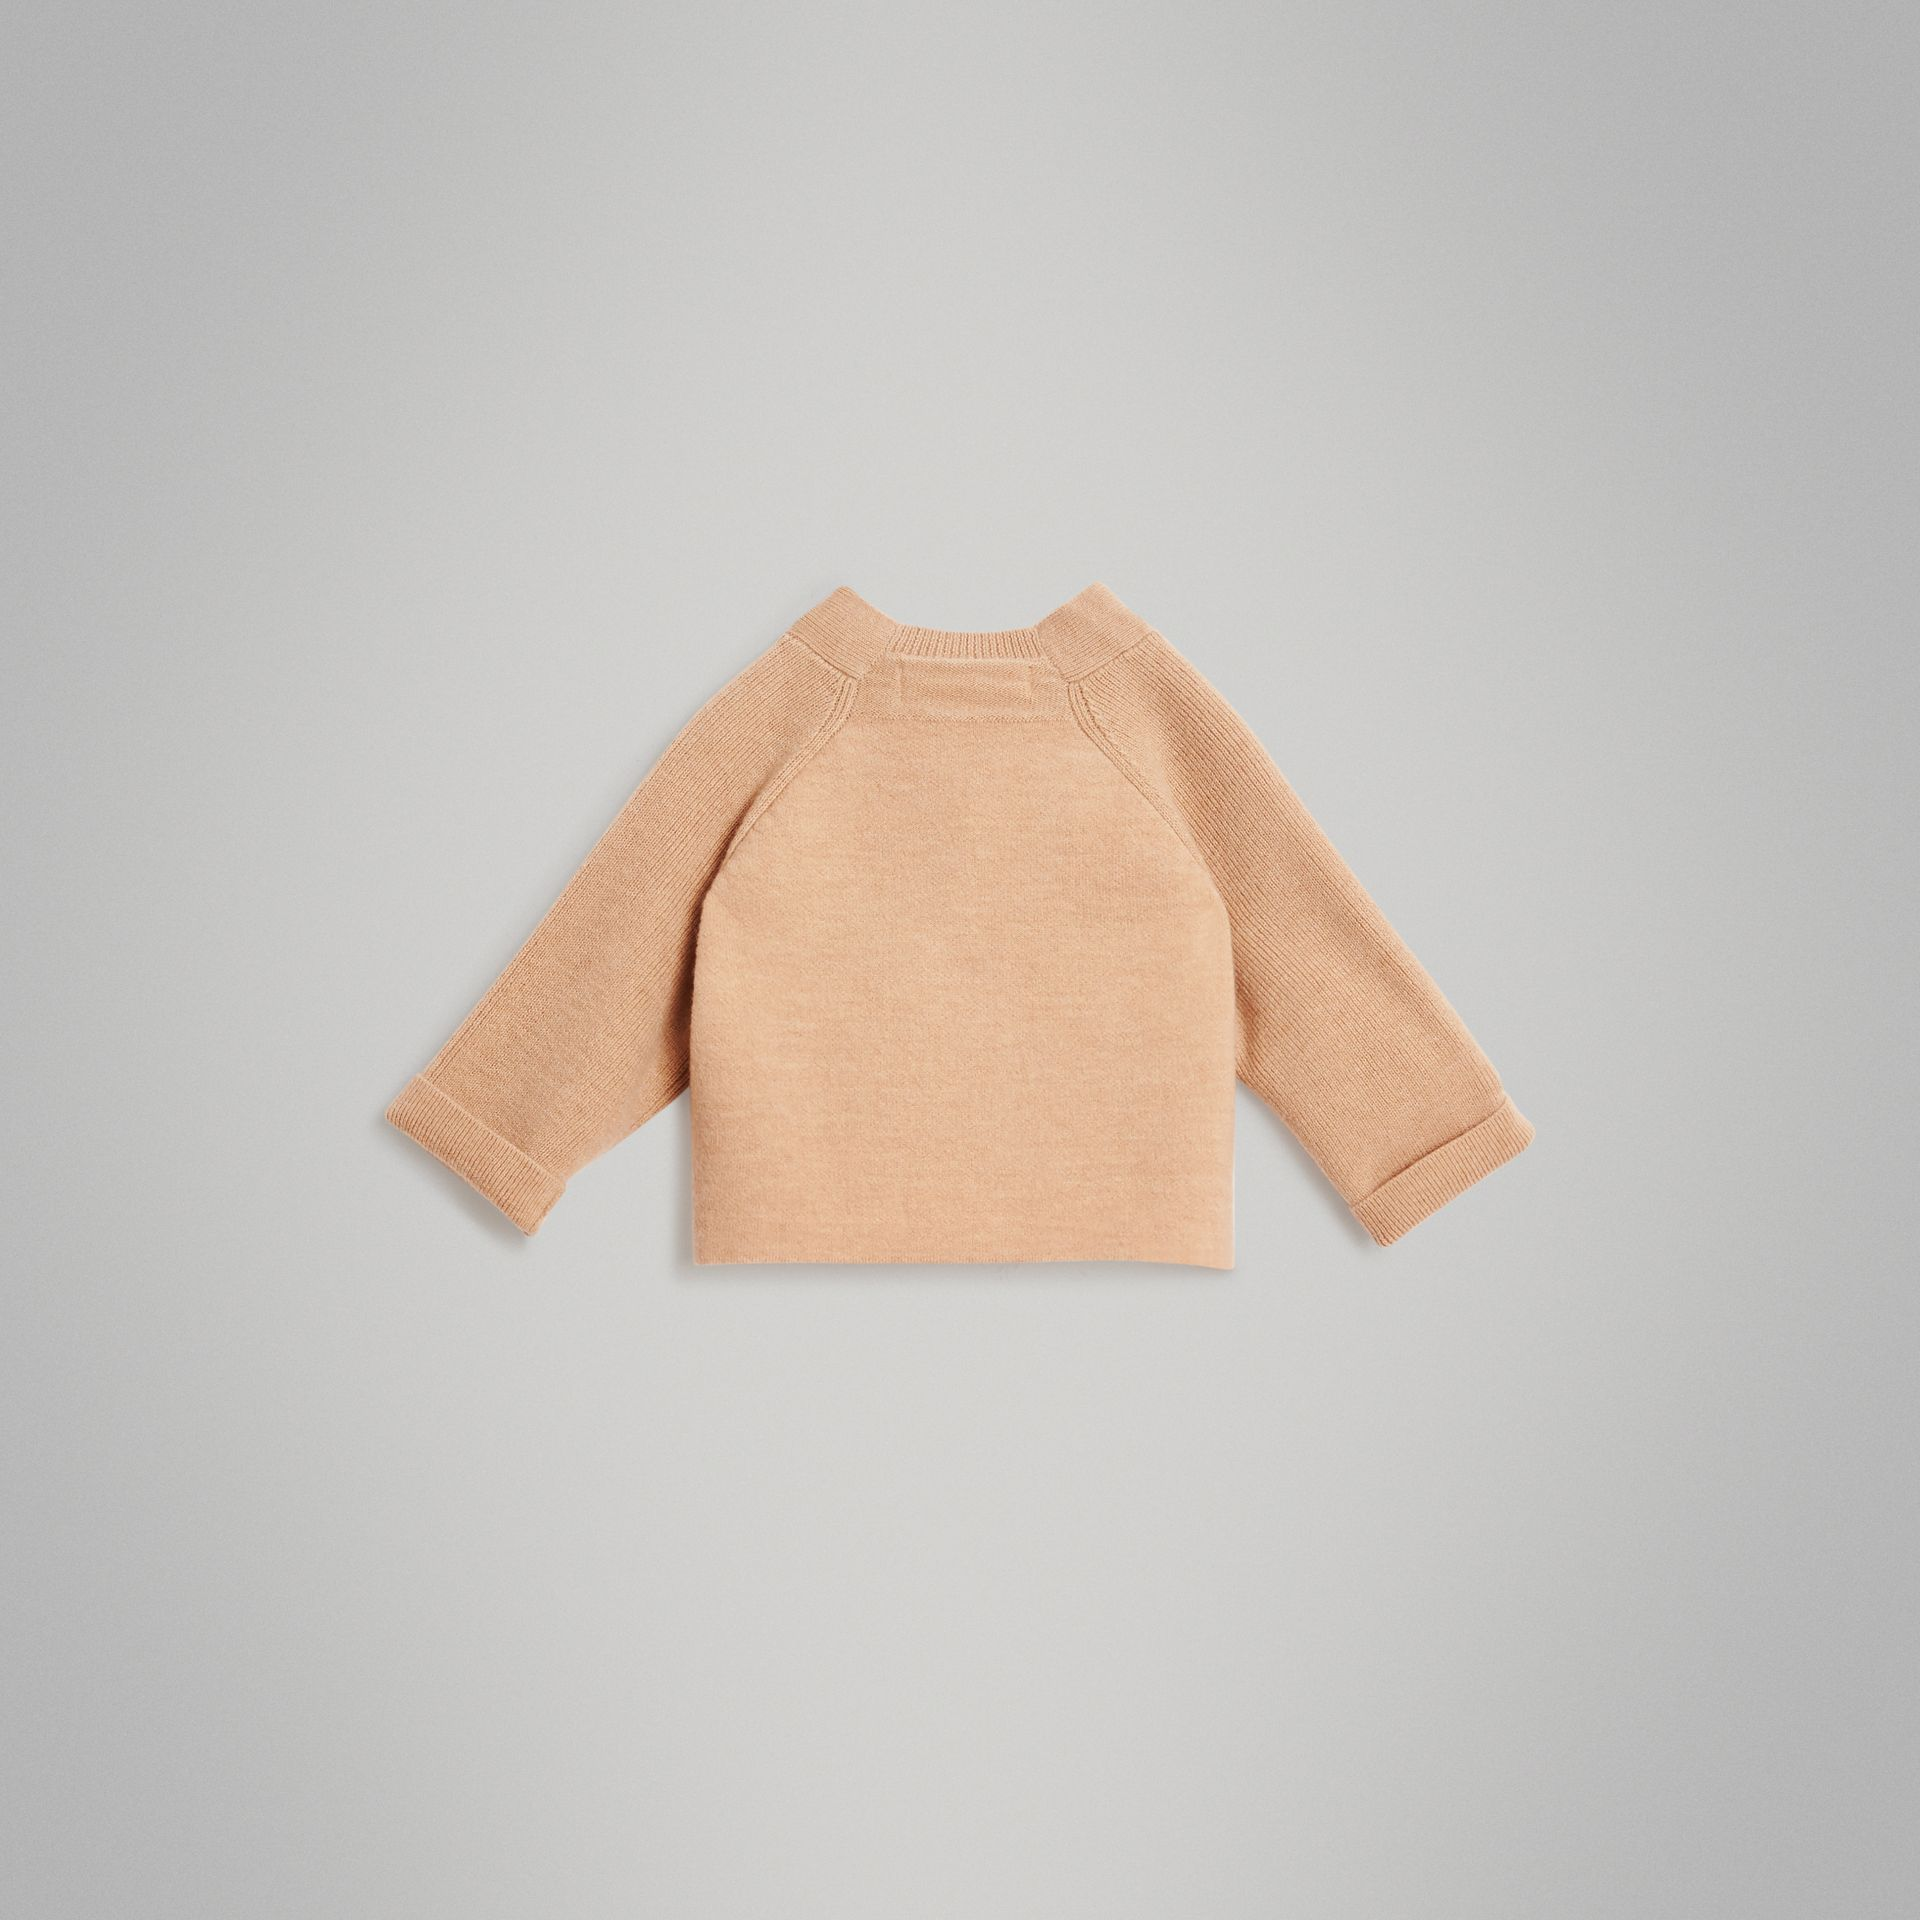 Cashmere Cotton Knit Cardigan in Peach - Children | Burberry - gallery image 3